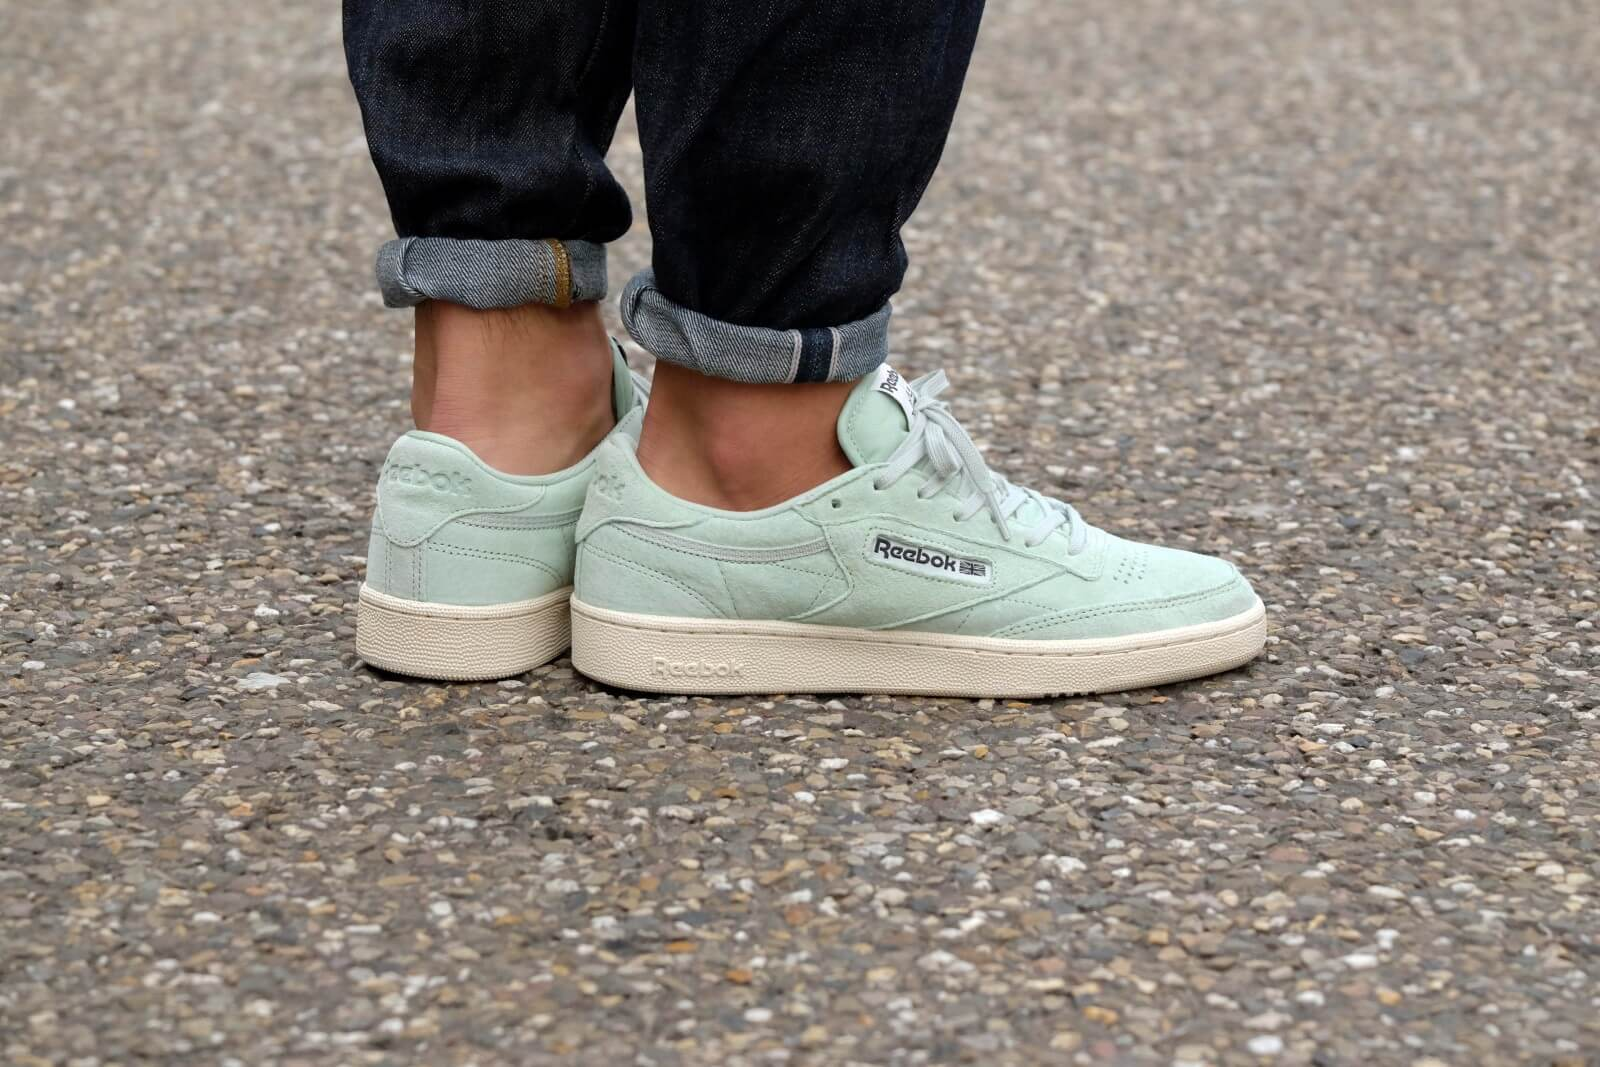 Ambicioso R calidad  reebok club c pastel Online Shopping for Women, Men, Kids Fashion &  Lifestyle|Free Delivery & Returns! -